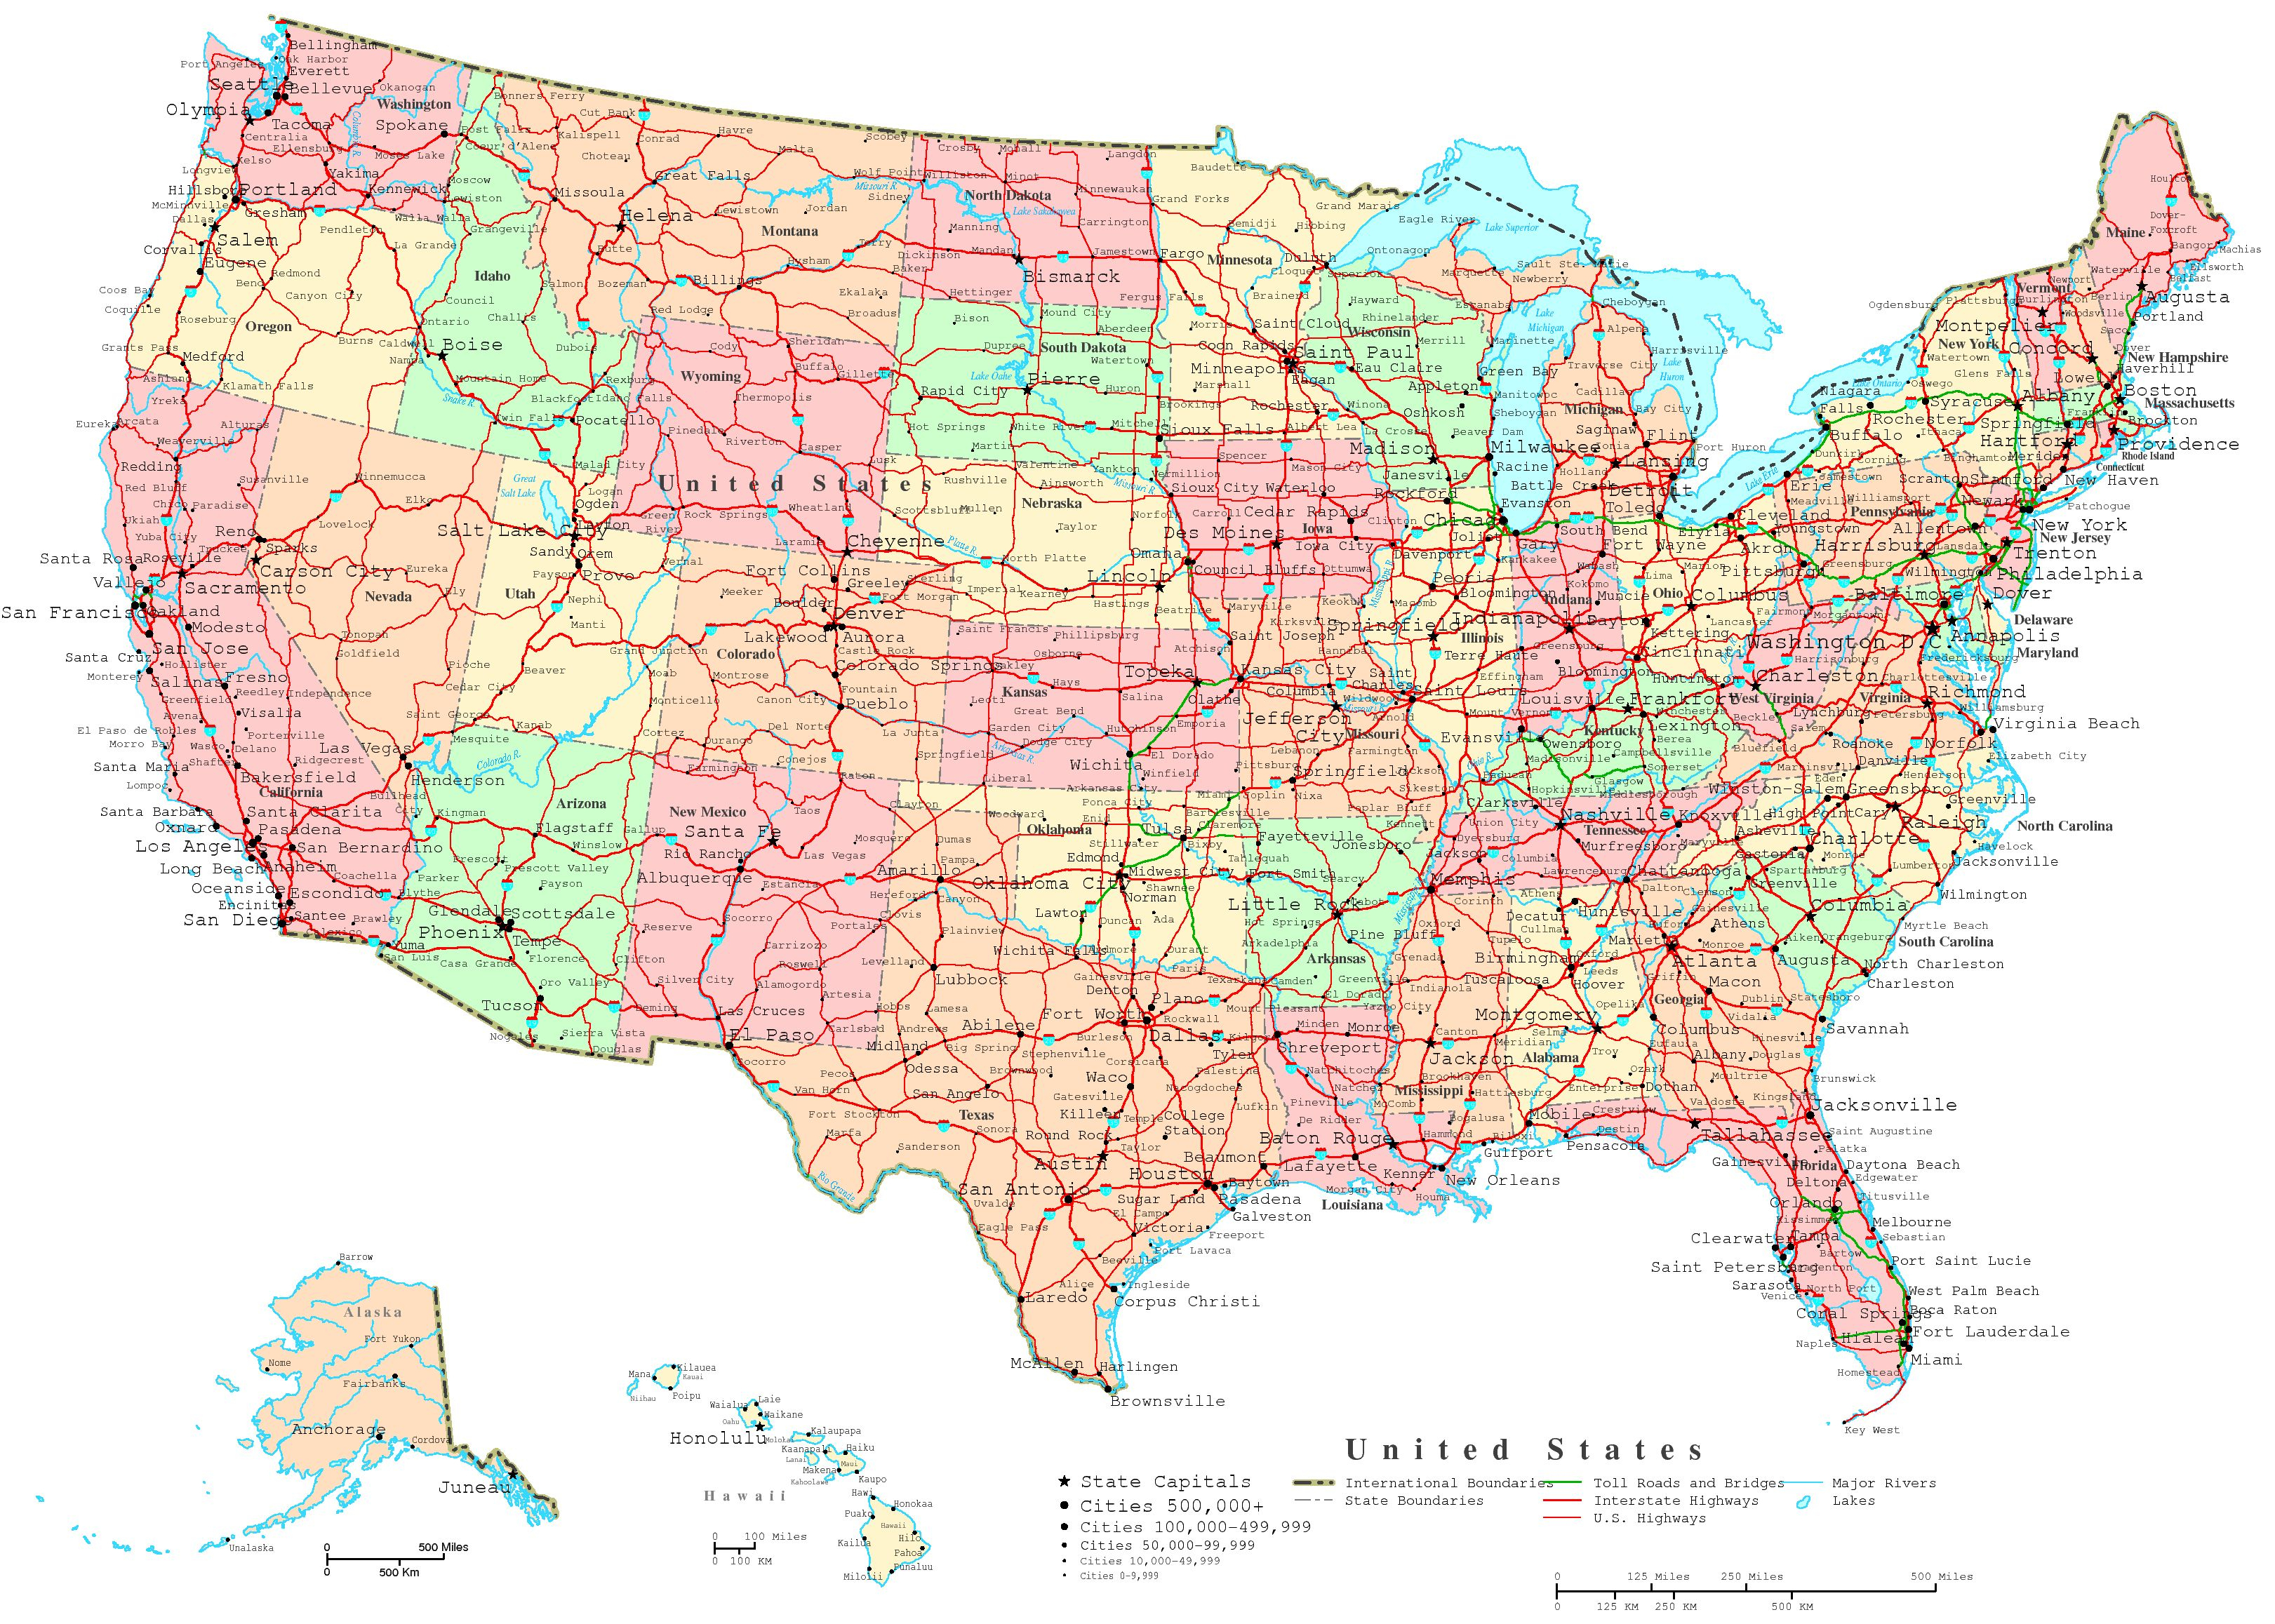 United States Printable Map - Free Printable Labeled Map Of The United States